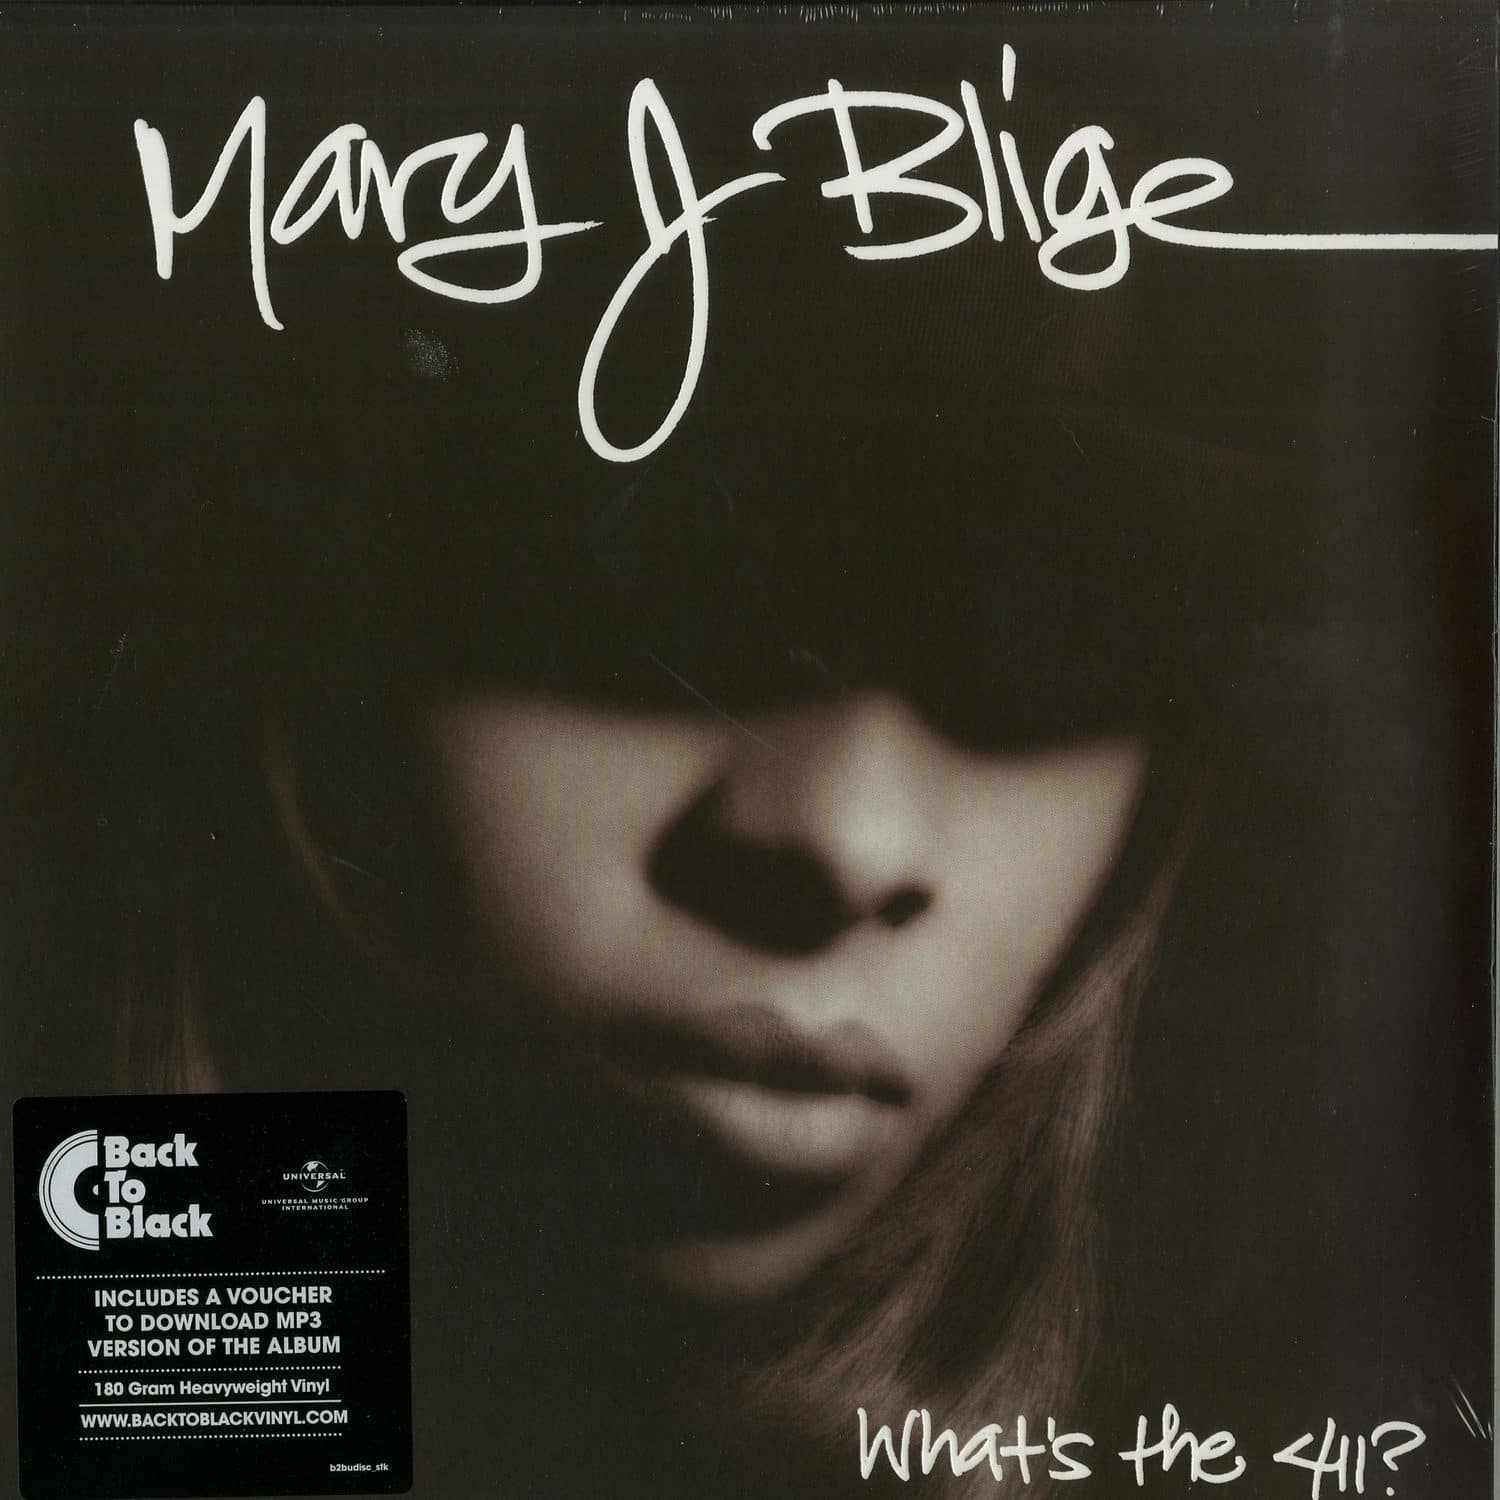 Mary j blige sweet thing mp3